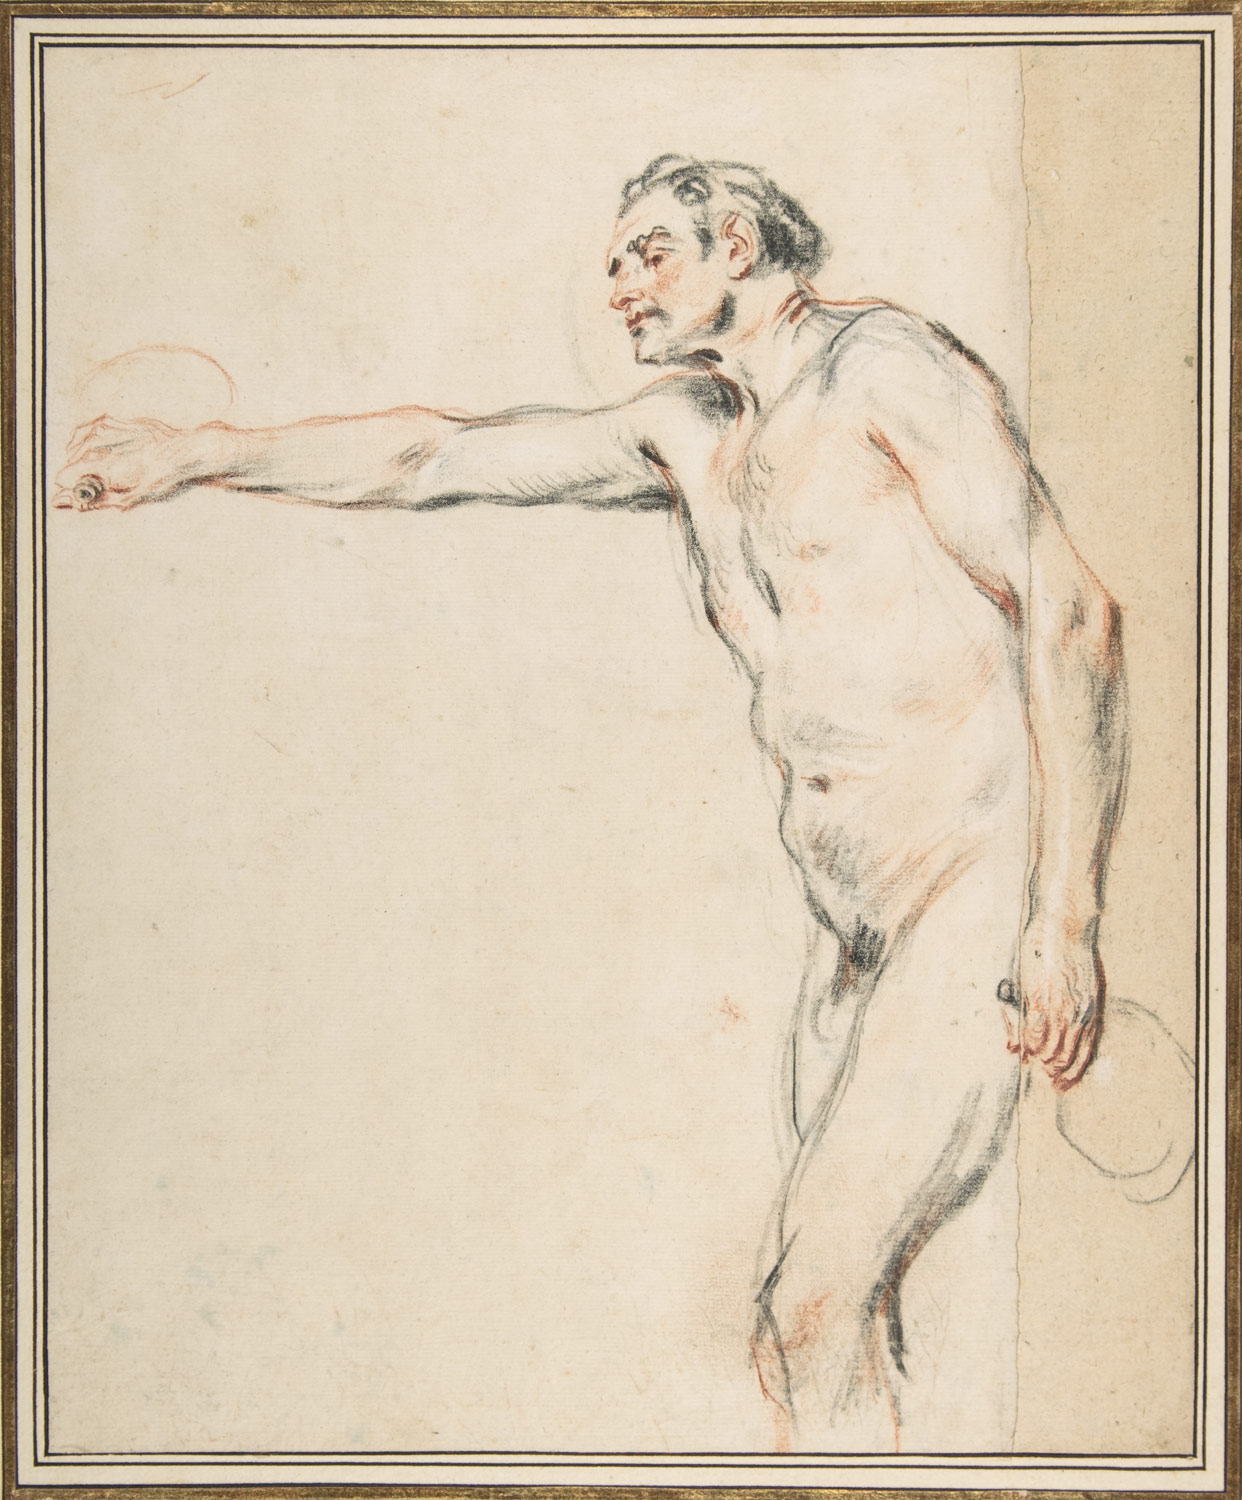 Study of a Nude Man Holding Bottles